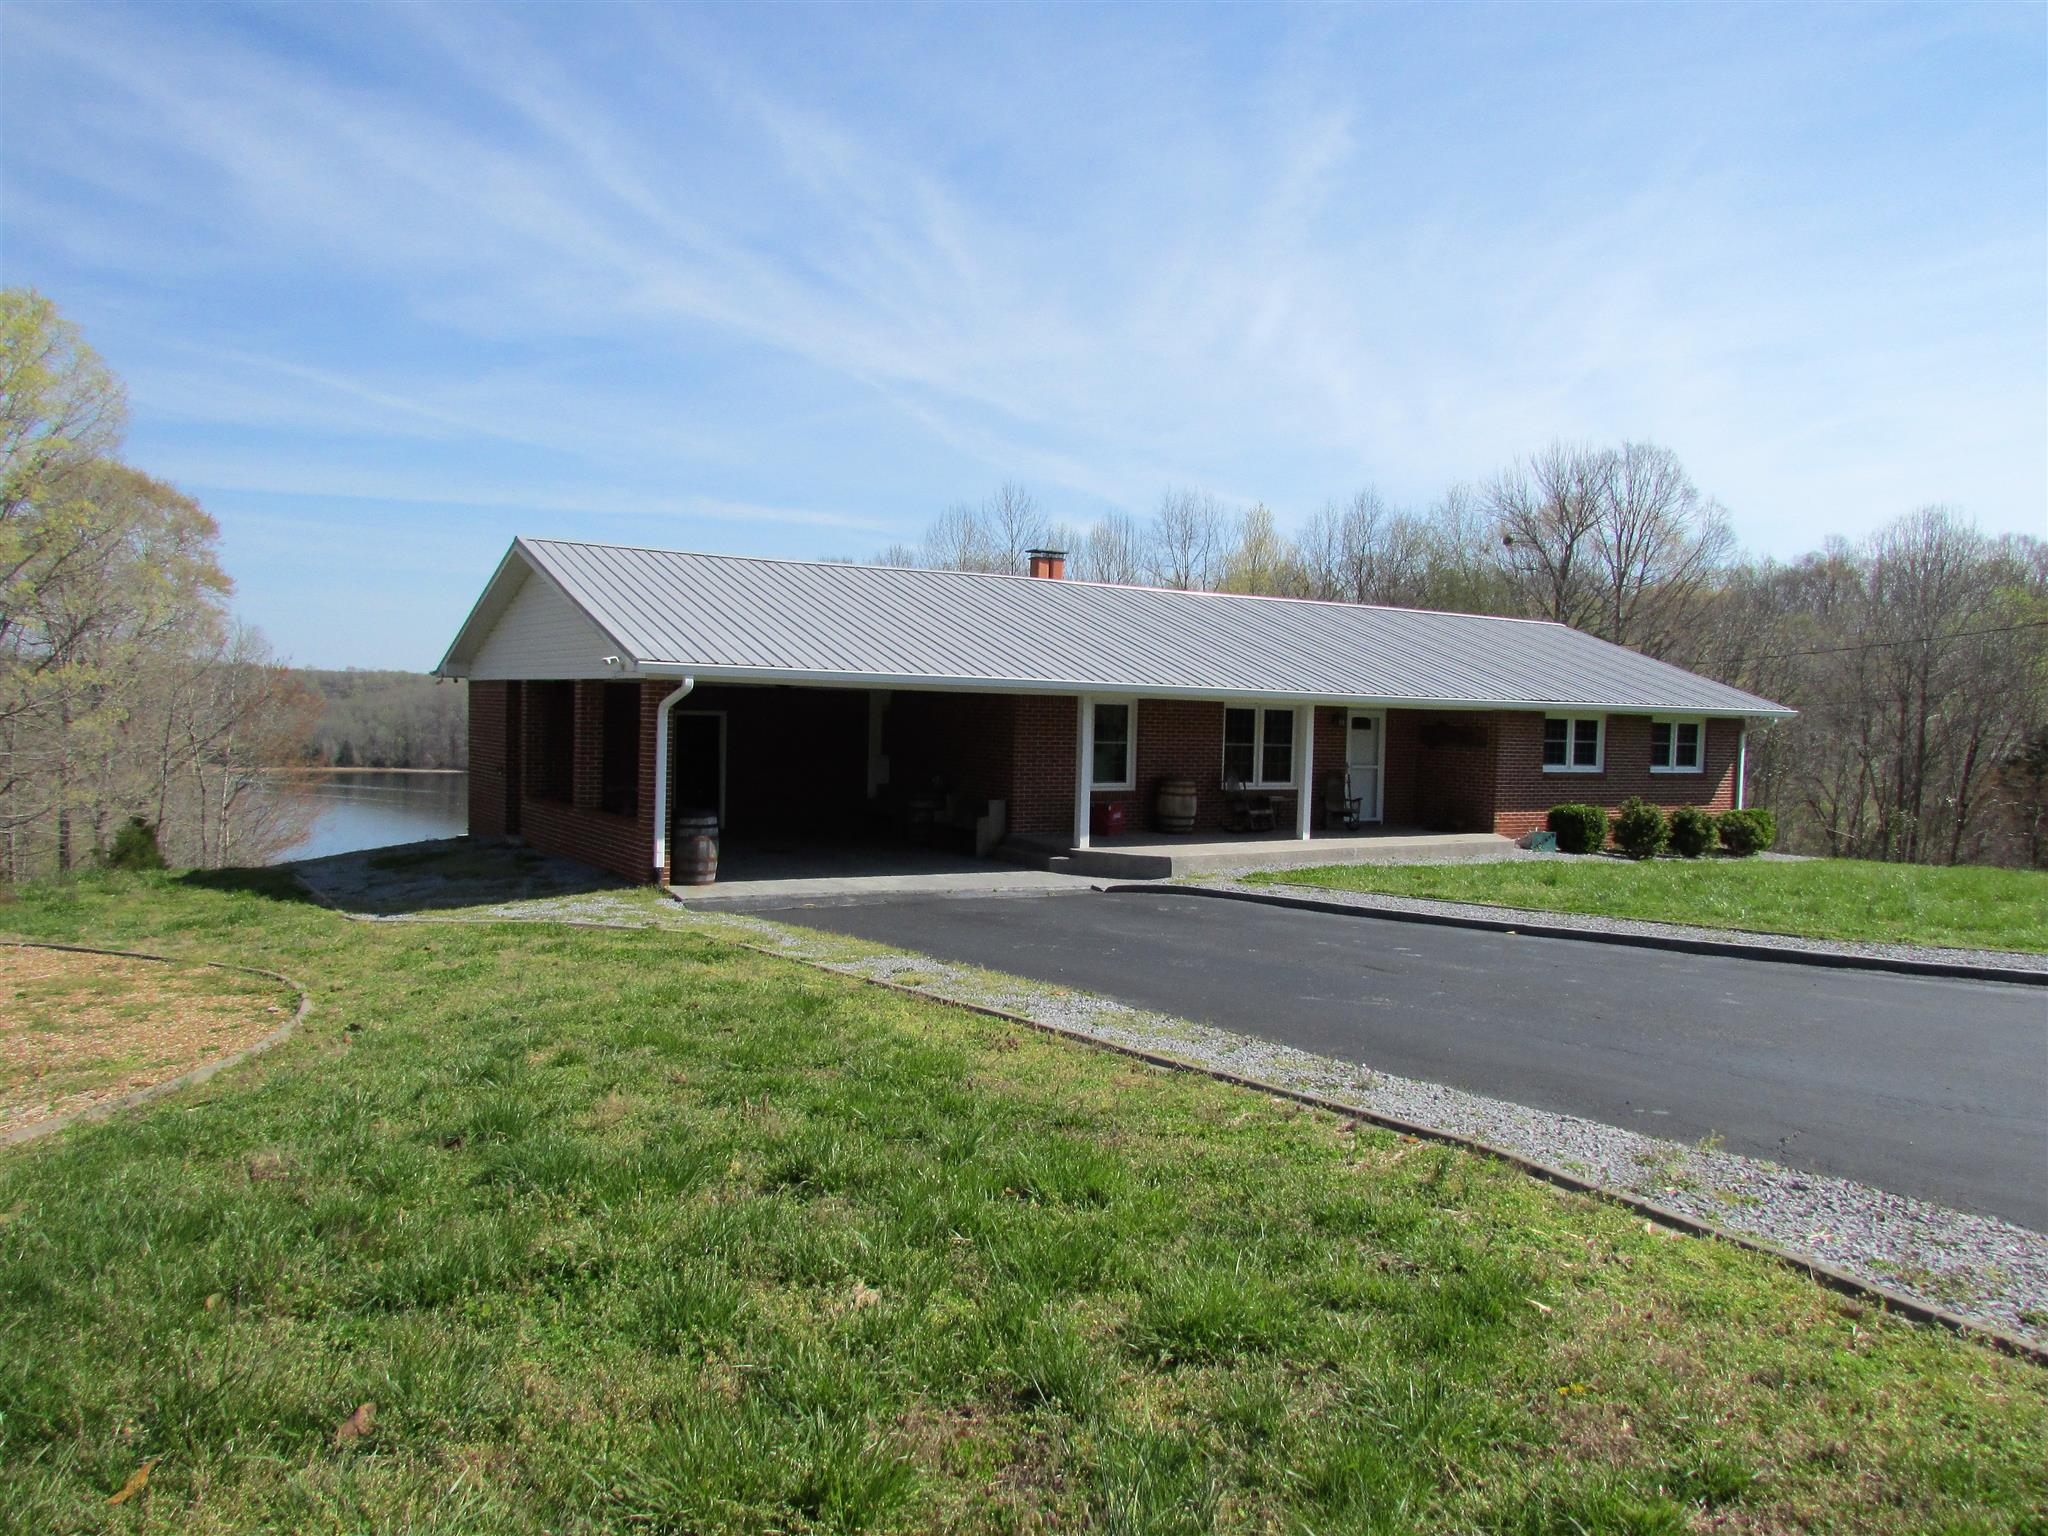 276 Rozell Dr, Manchester, TN 37355 - Manchester, TN real estate listing